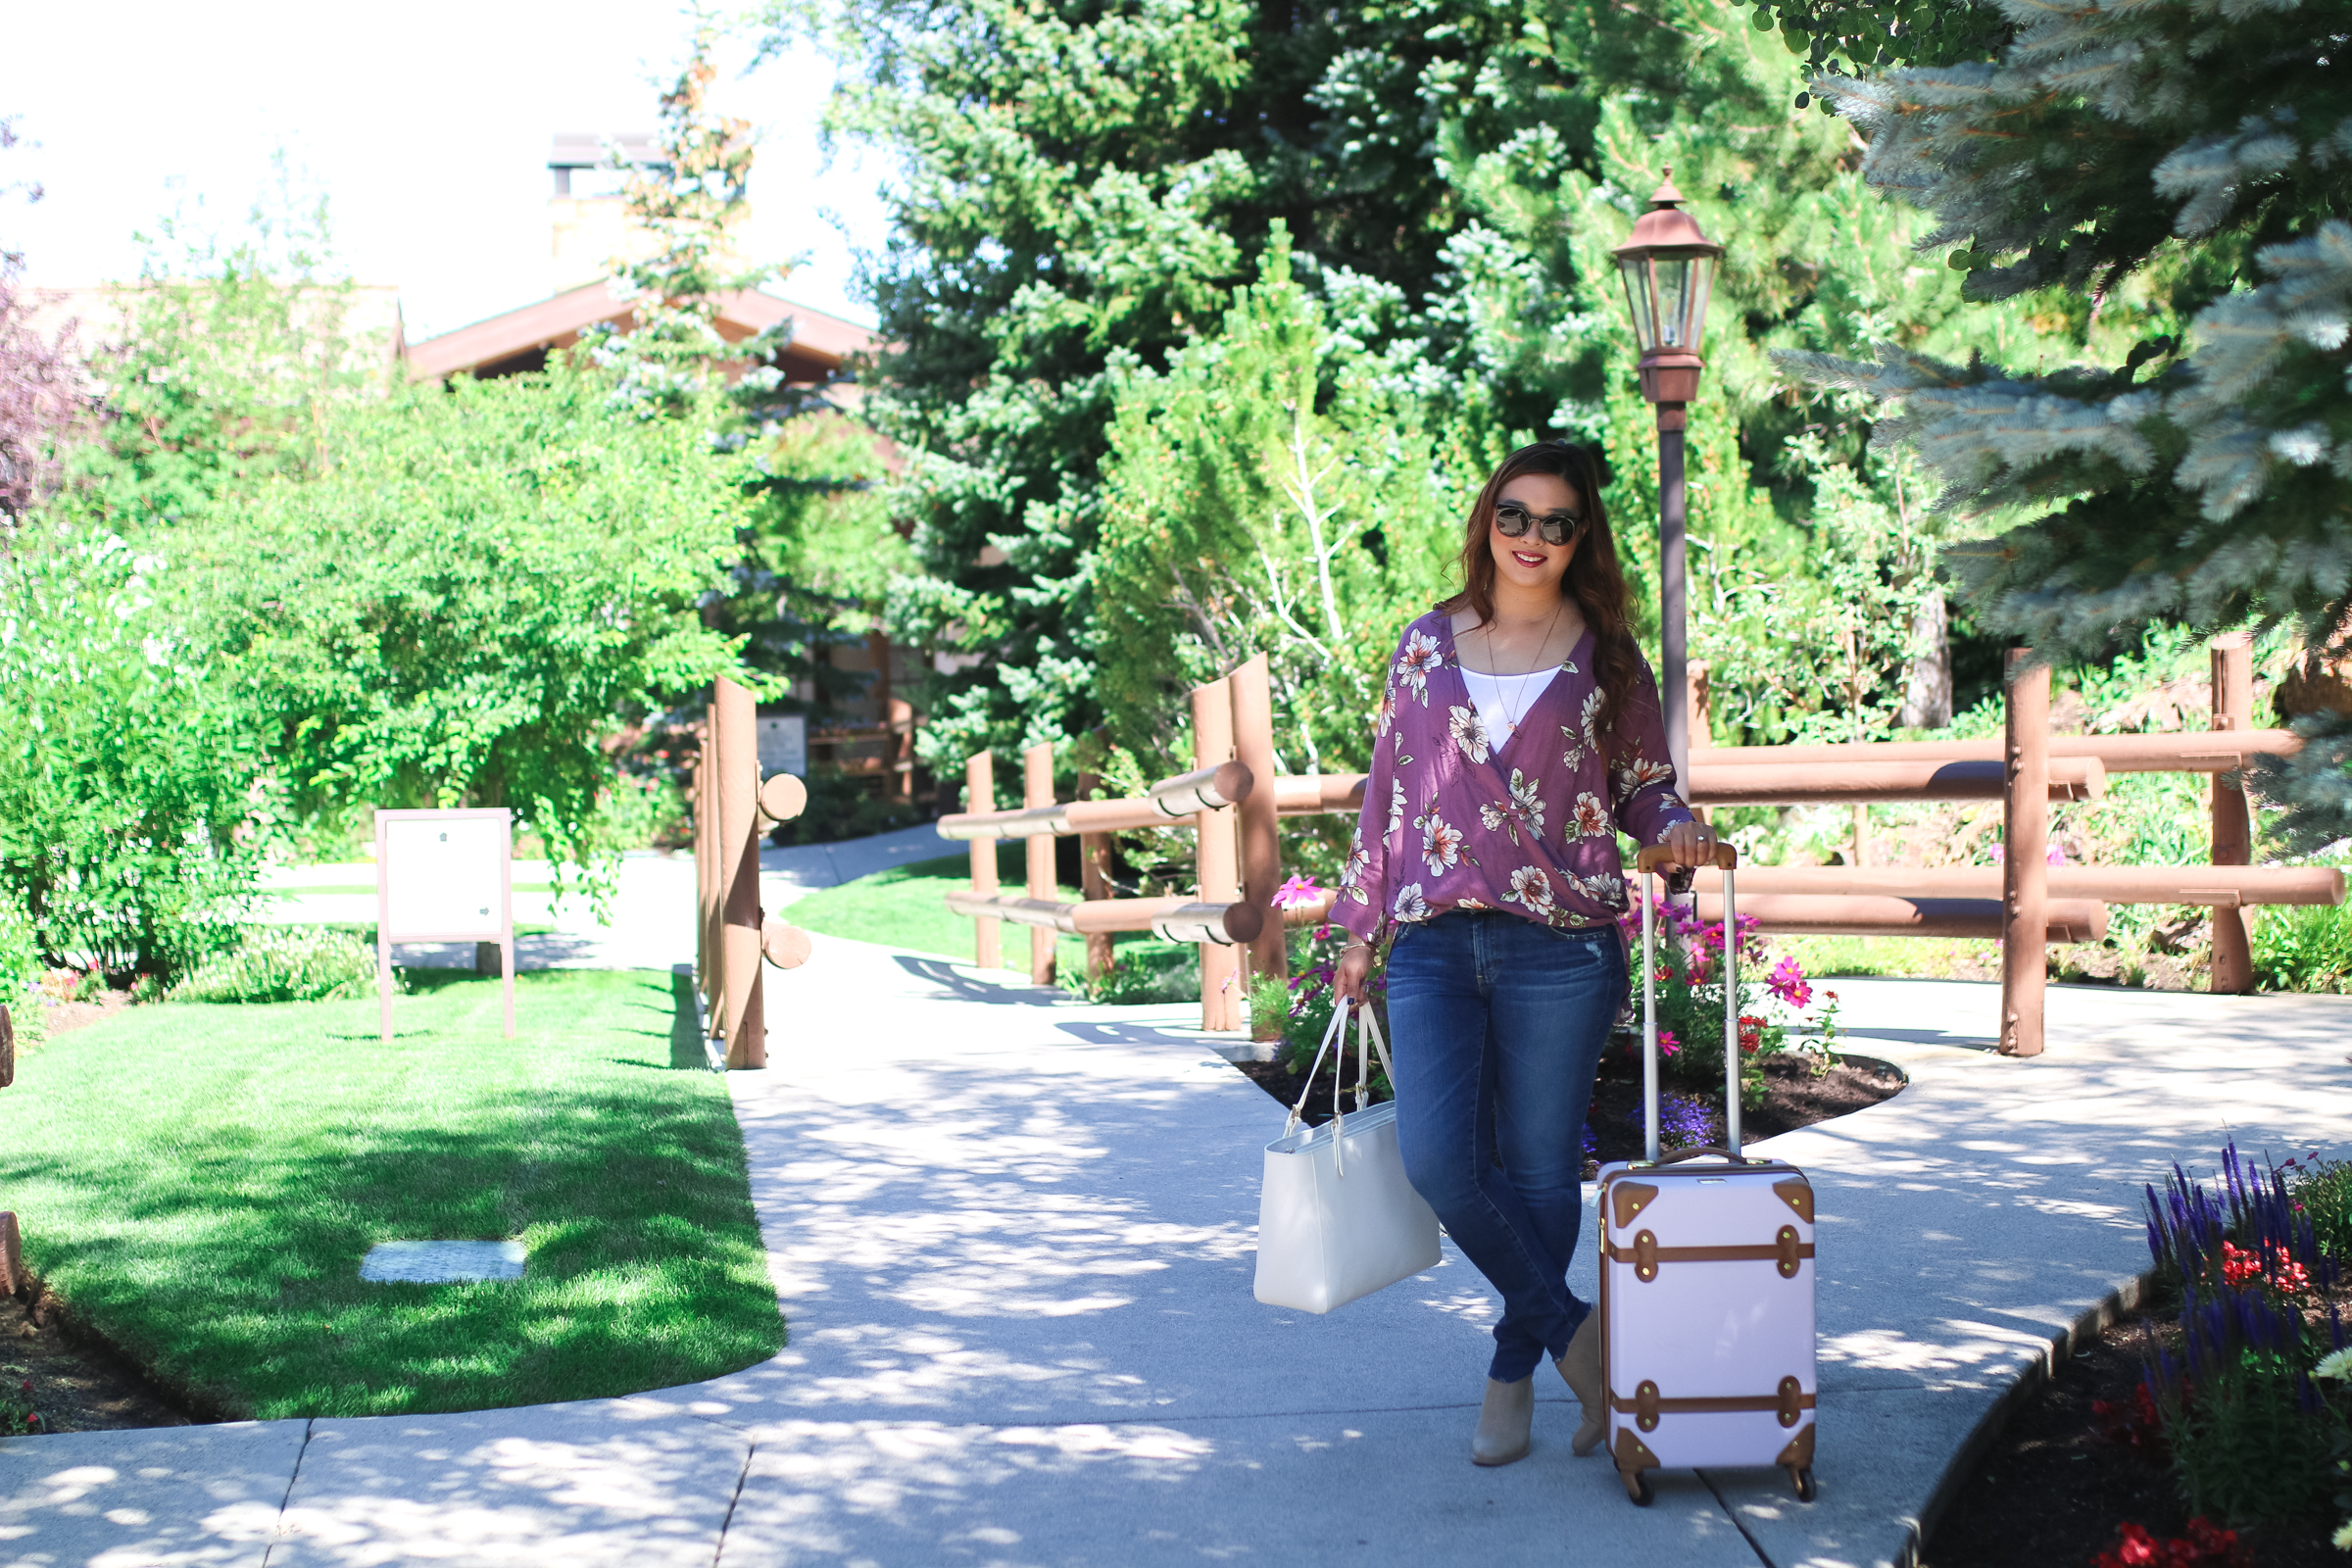 A relaxing Park City Resort staycation at Stein Eriksen Lodge by popular Utah blogger Sandy A La Mode